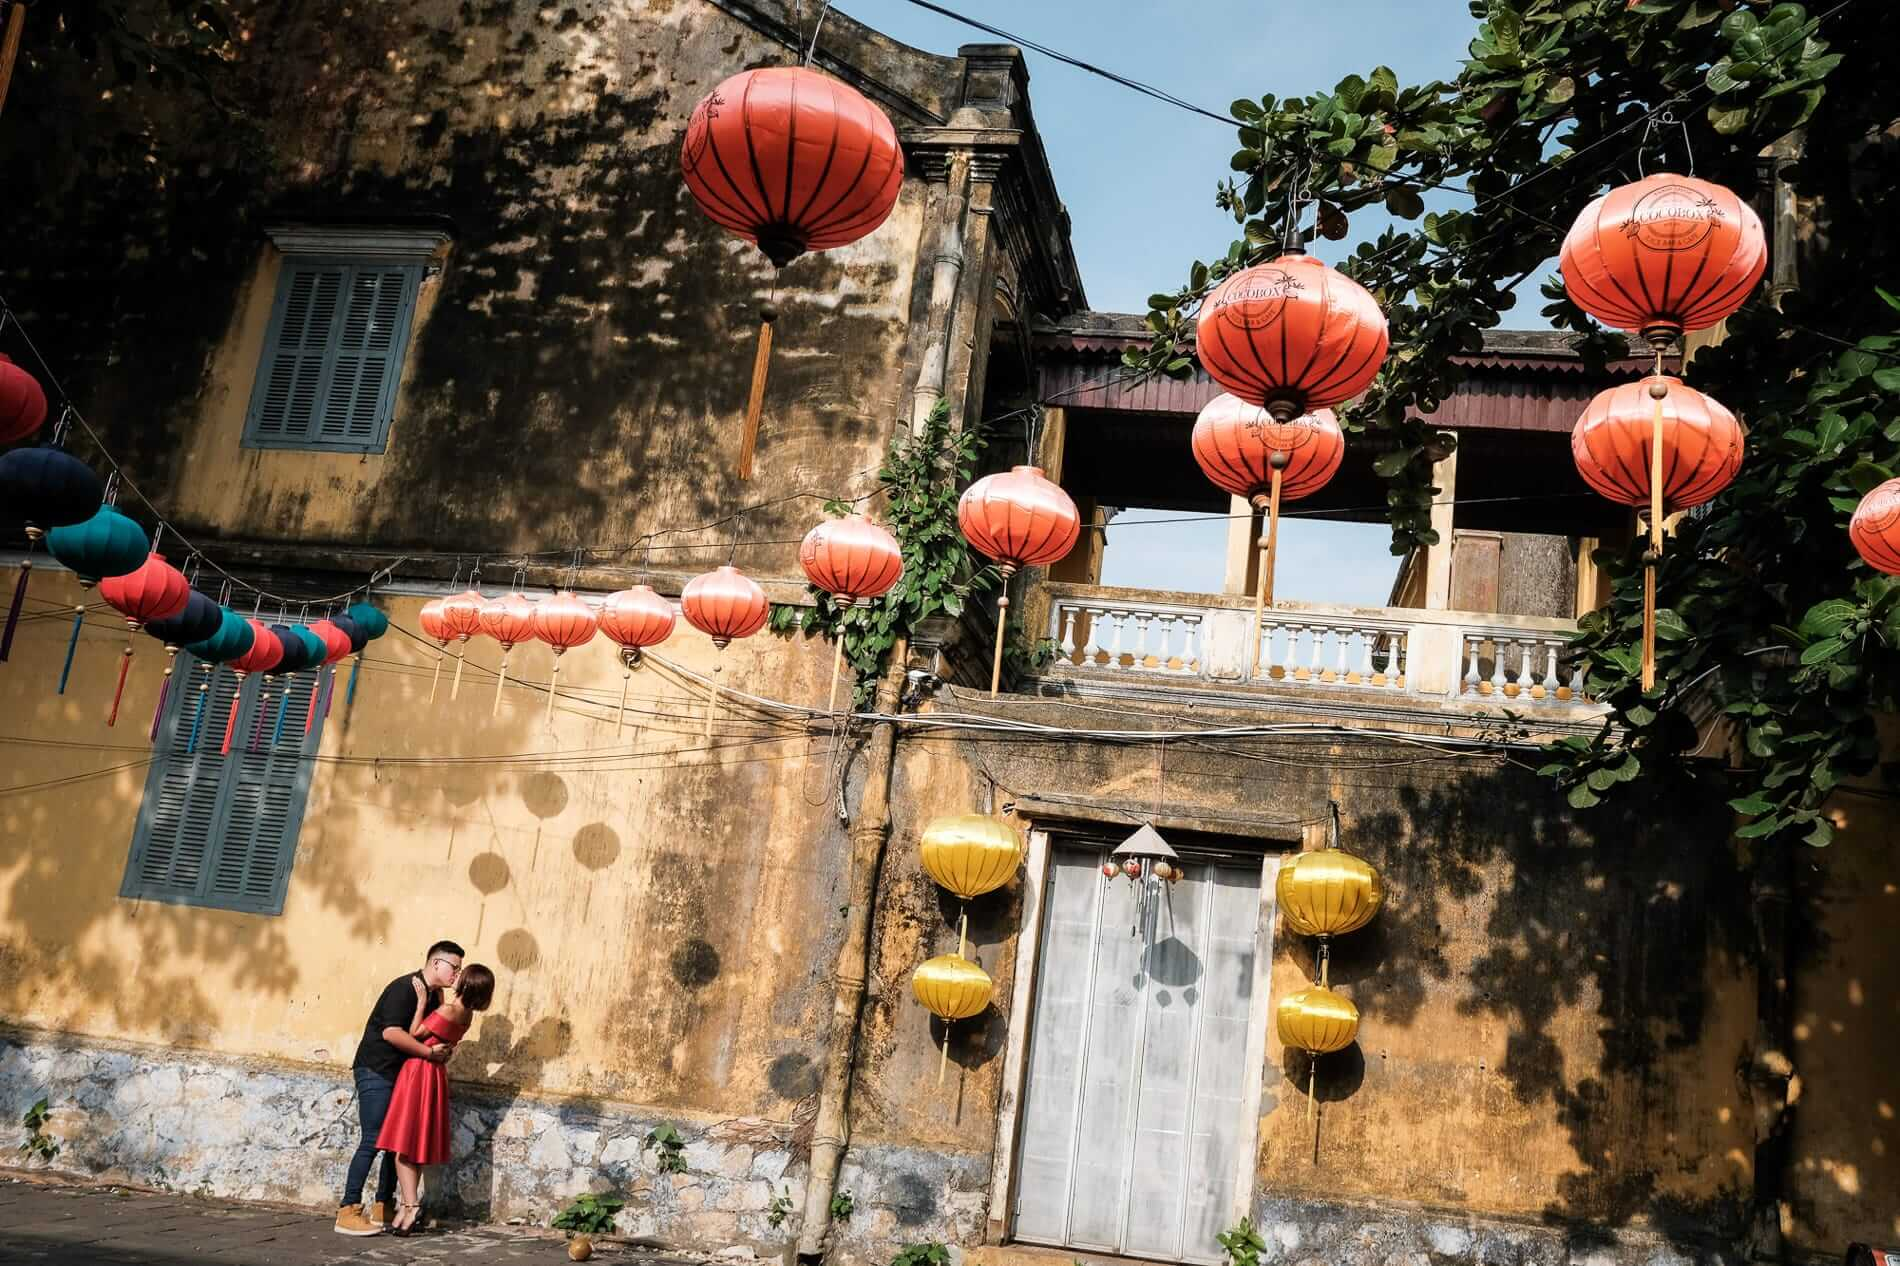 A romantic moment for a couple in Hoi An